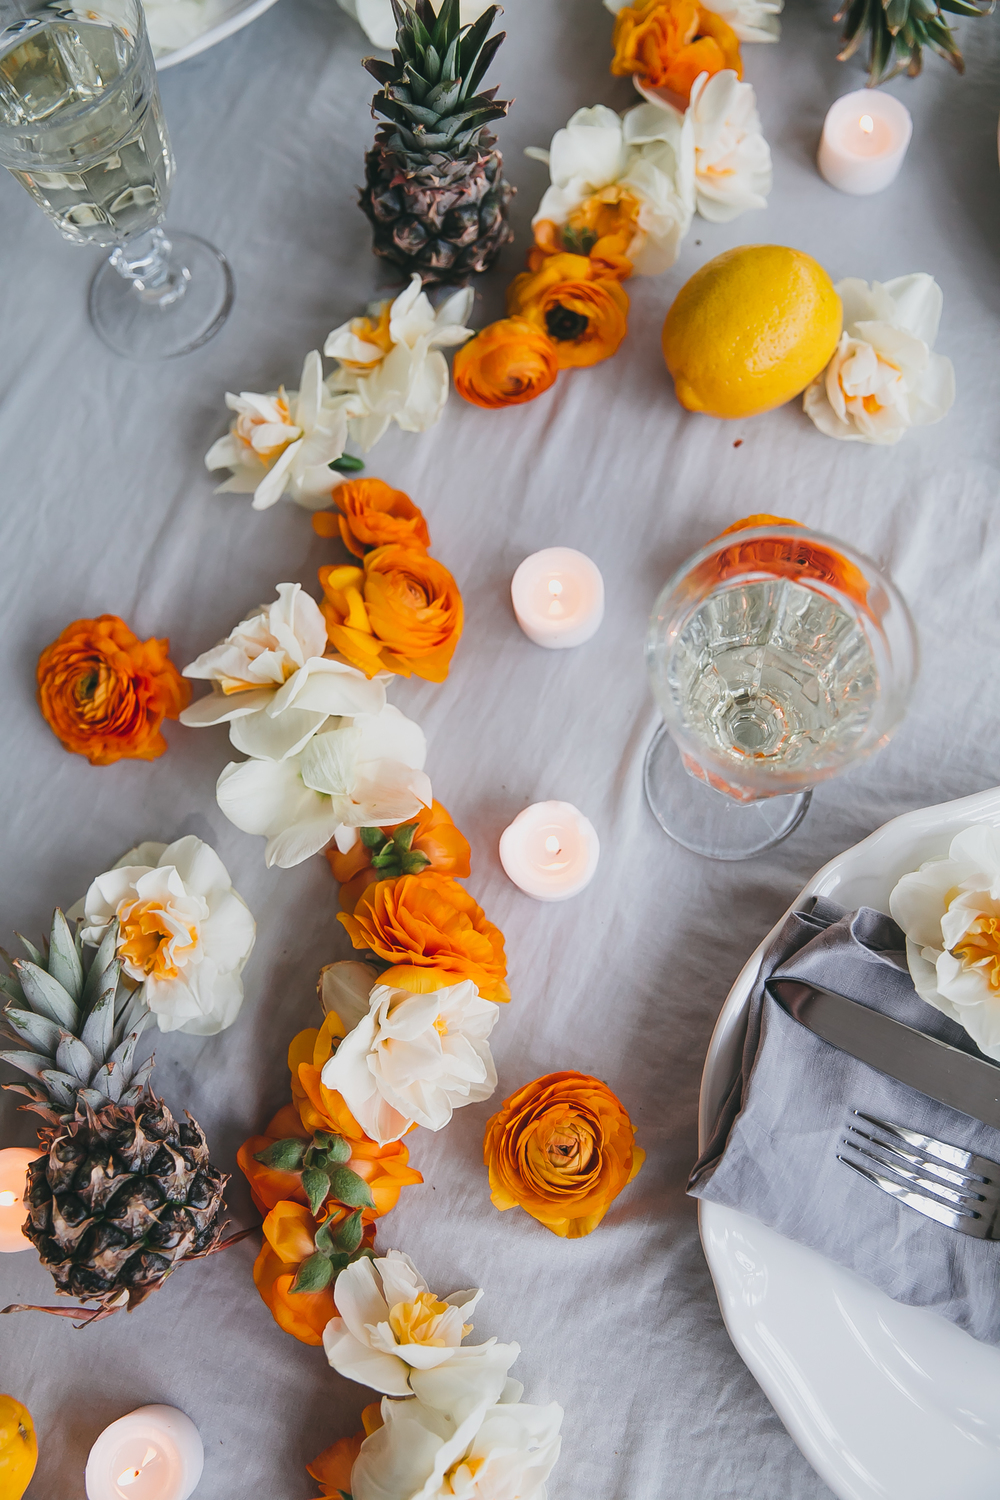 Table Settings with Oh Flora-286.jpg